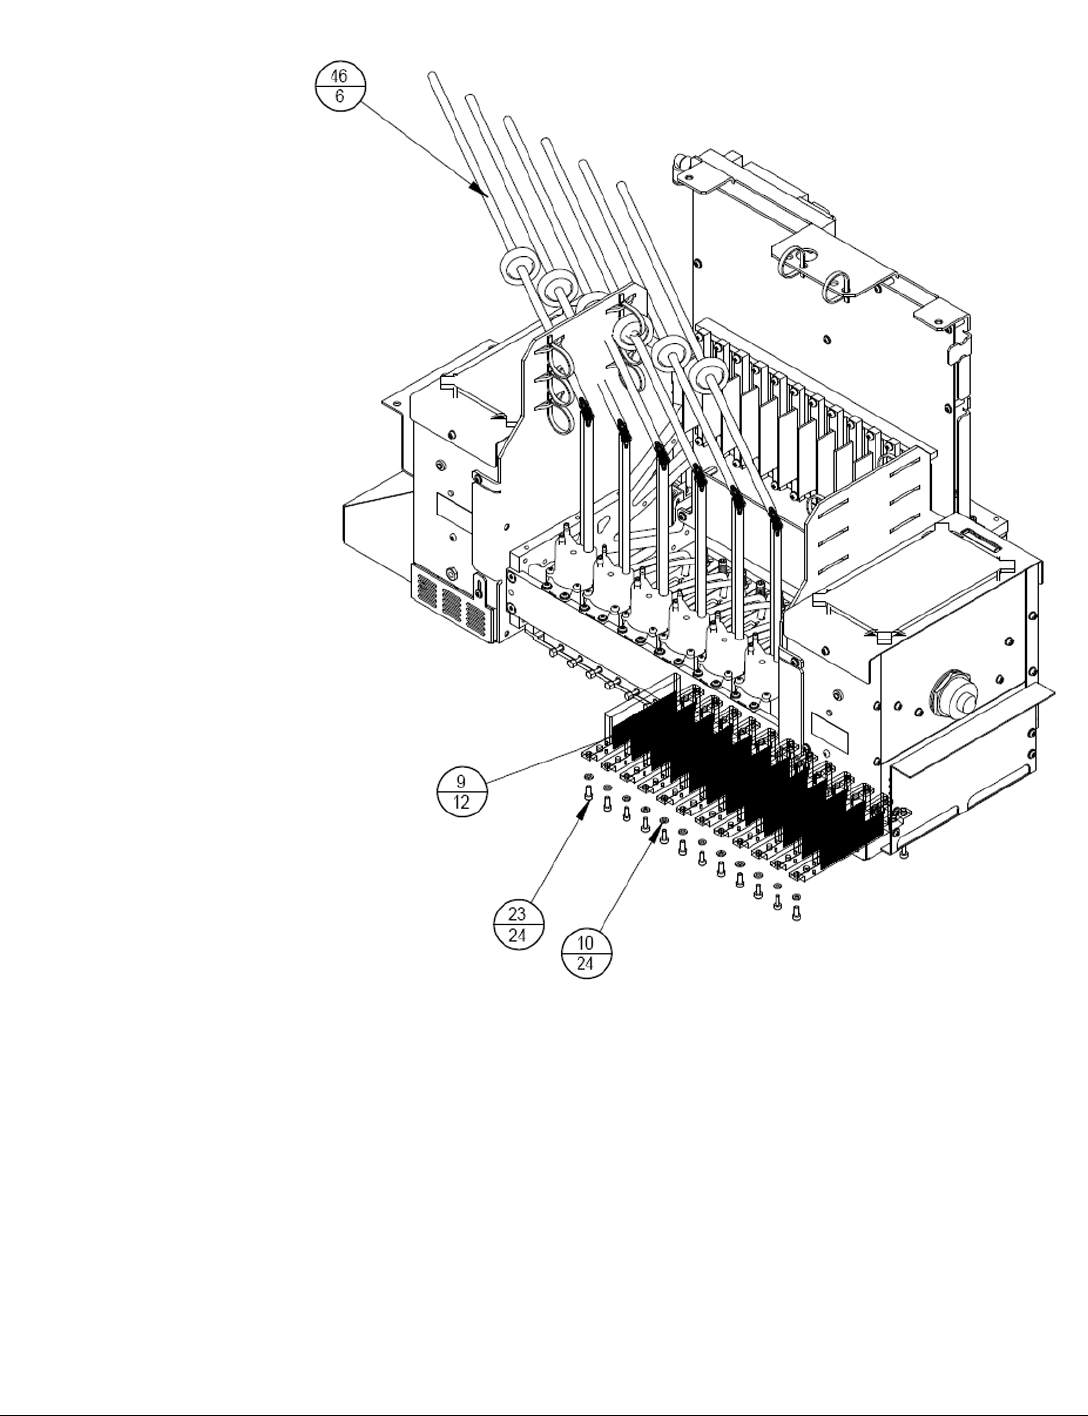 Cq114 67185 Hp New Light Blocking Shield Used With The Pair Of Pro Comp Pc 7003 Wiring Diagram 90035 Rev B Scitex Fb500 Fb700 Service Manual Page 44 510